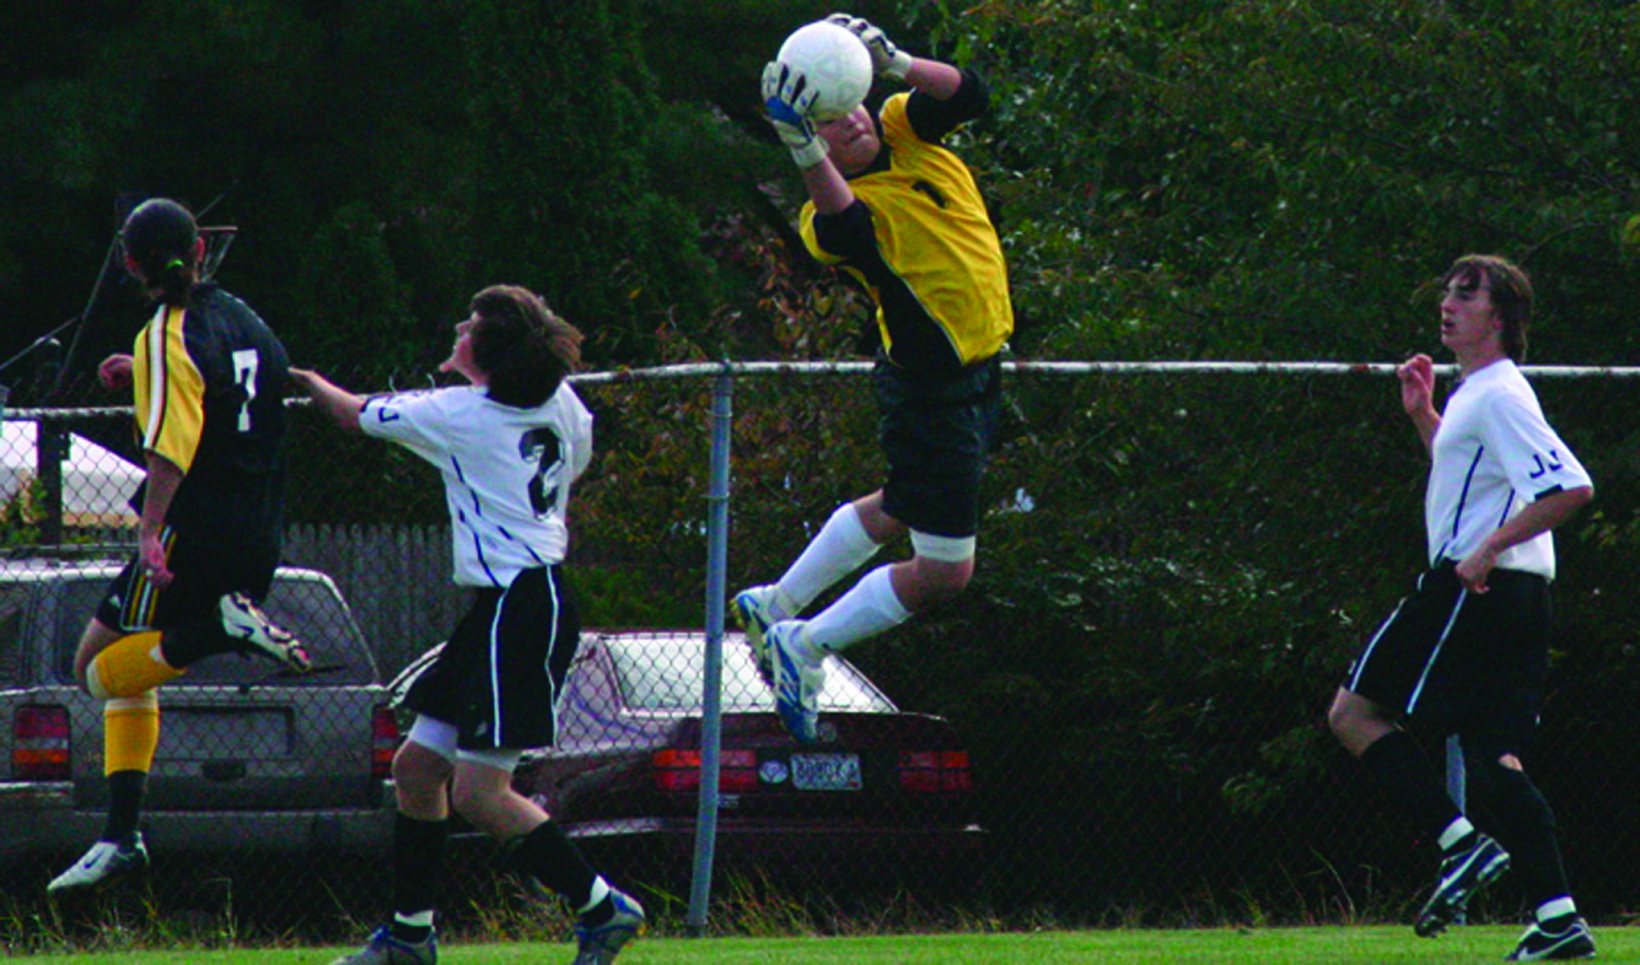 sports - pil socr - eric blanchard leaping save